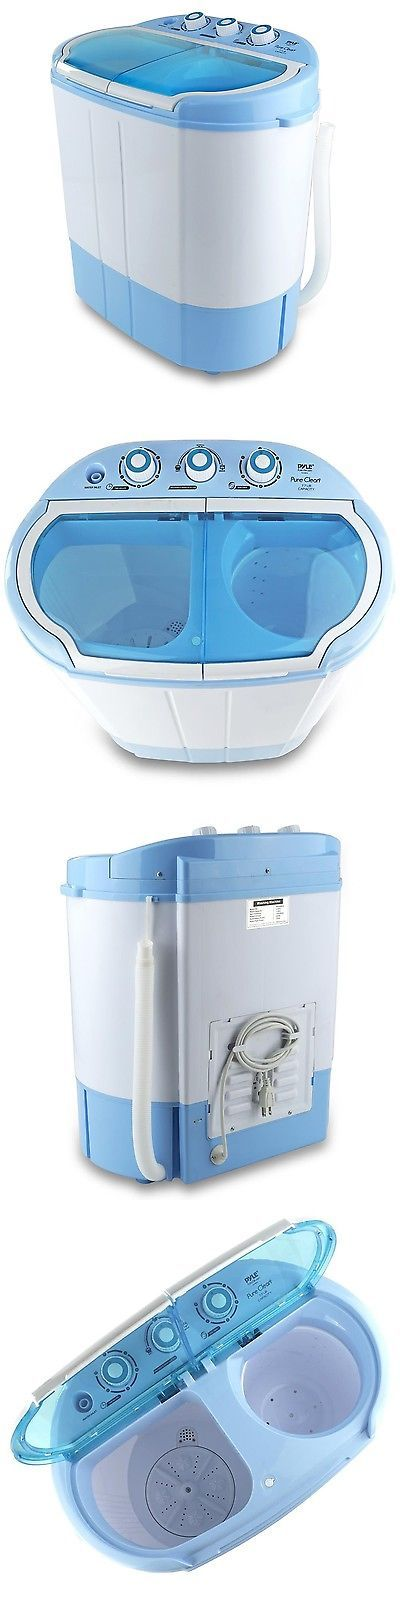 portable washing and drying machine